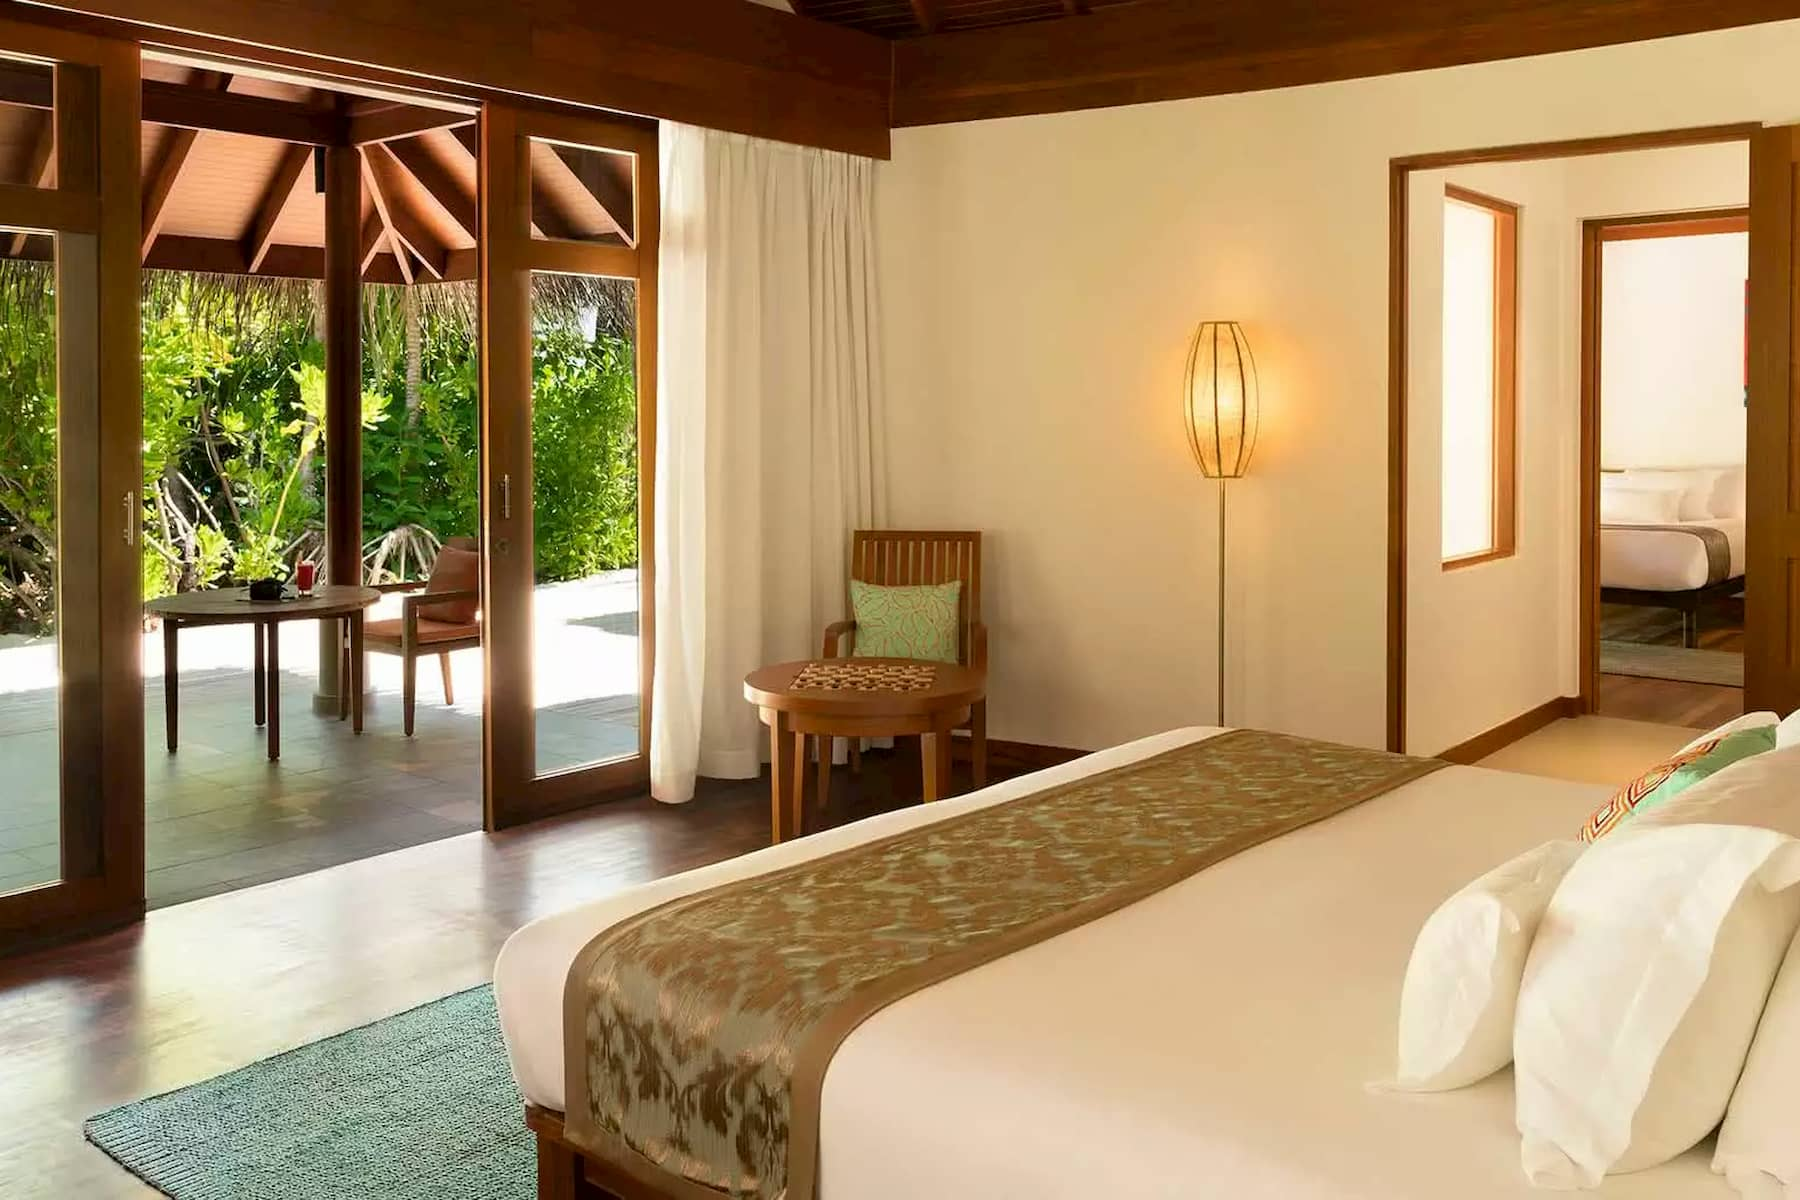 Anantara Dhigu resort Maldive two bedroom family villa